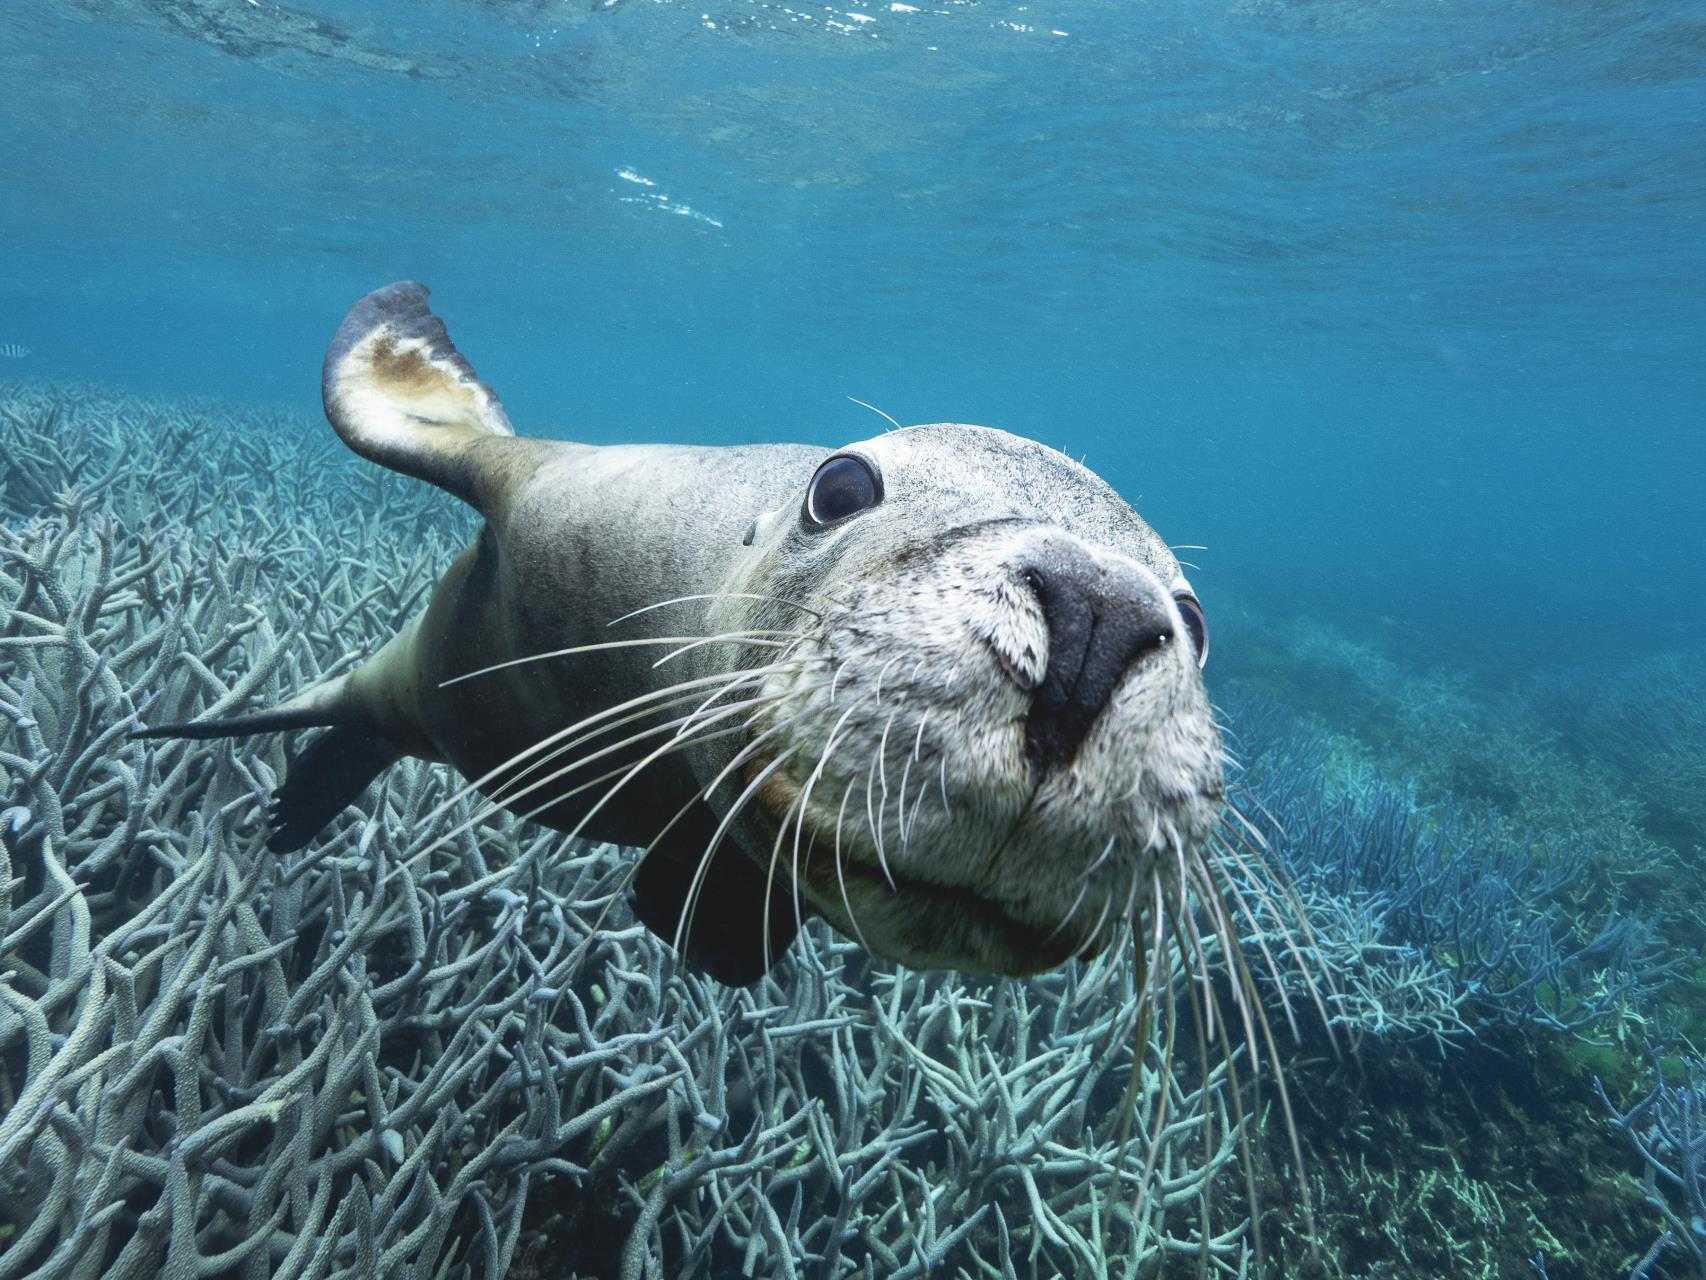 Seal at the Abrolhos Islands